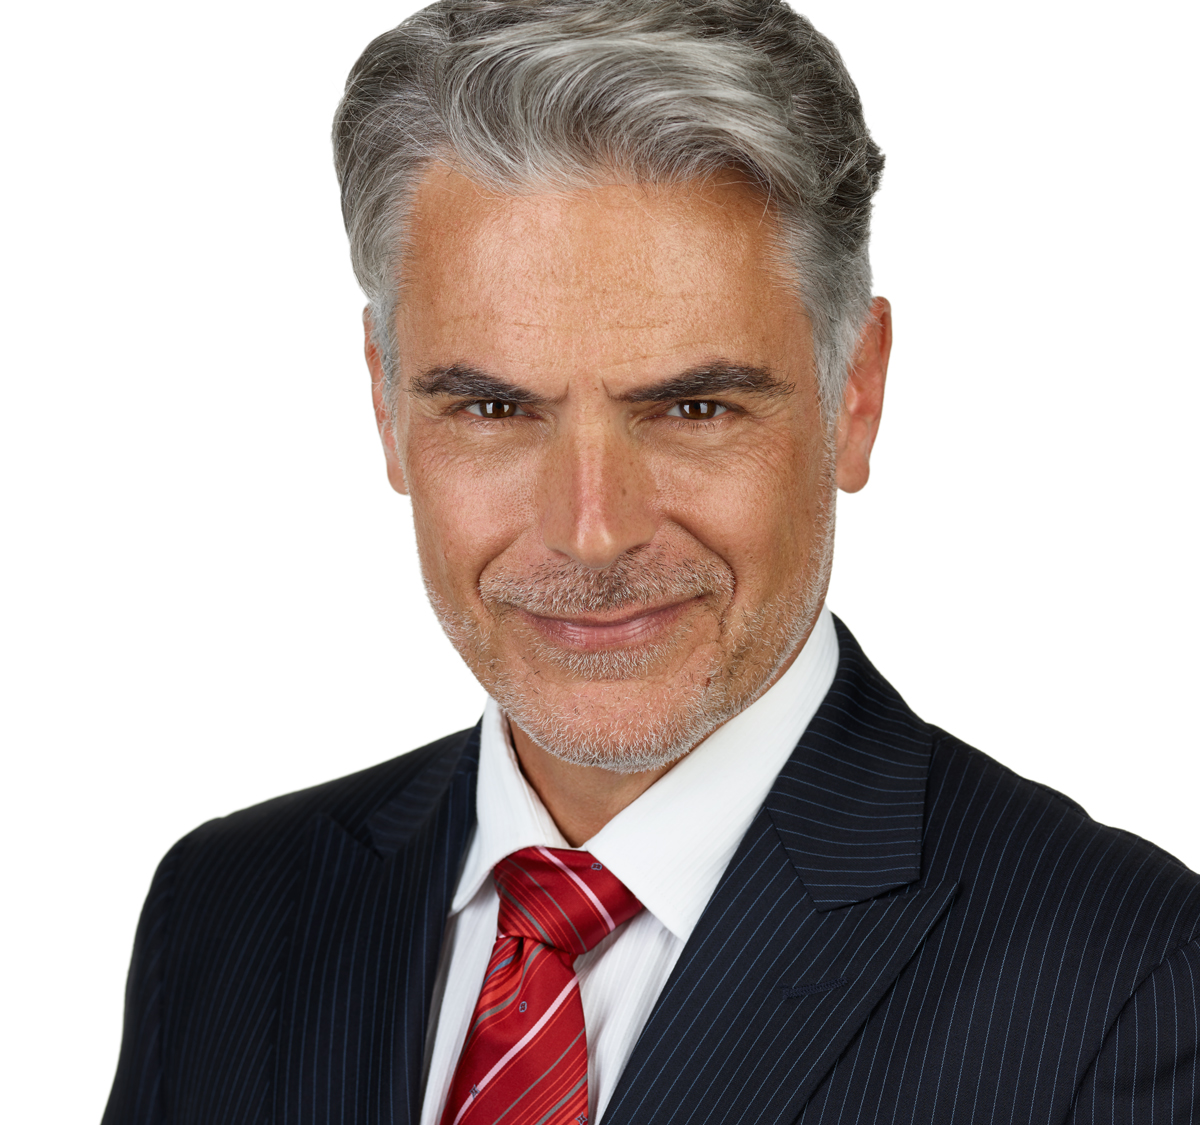 Professional headshot of a male corporate businessman in a suit and tie taken at NYC Headshot.